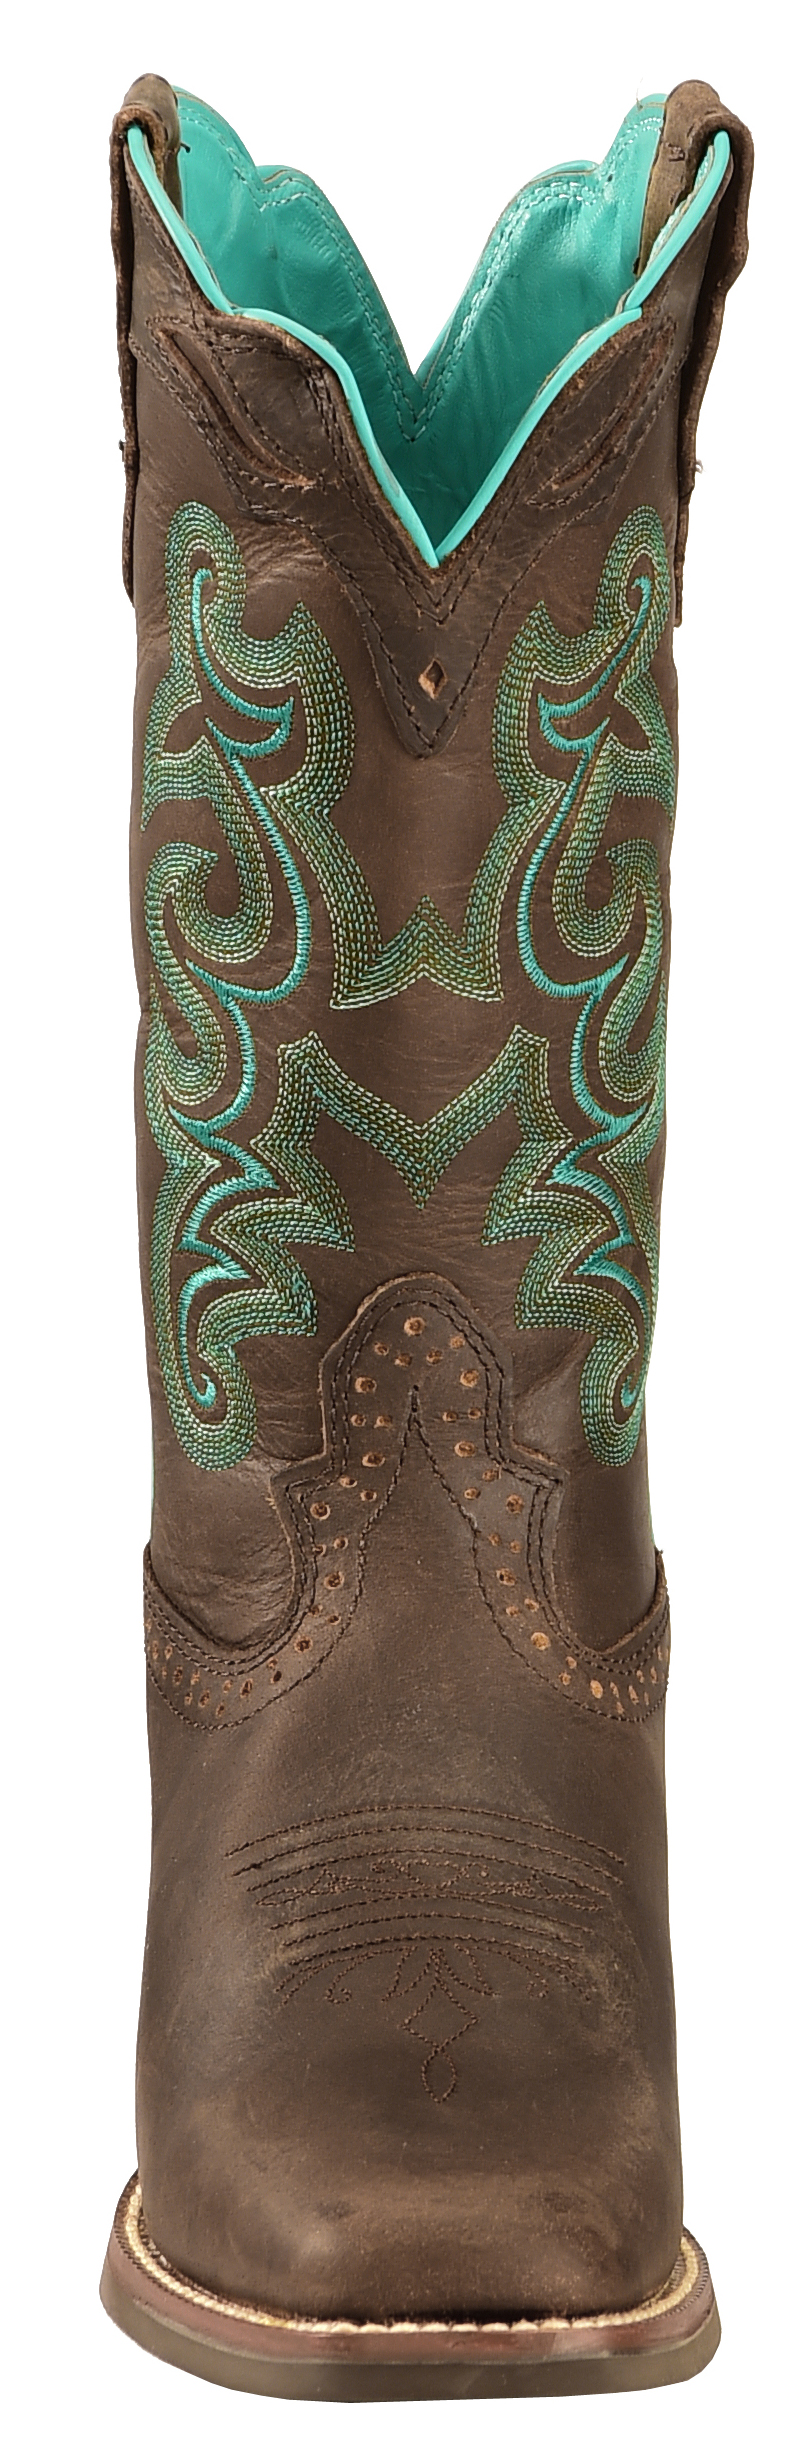 Justin Silver Turquoise Stitched Cowgirl Boots - Square Toe | Sheplers